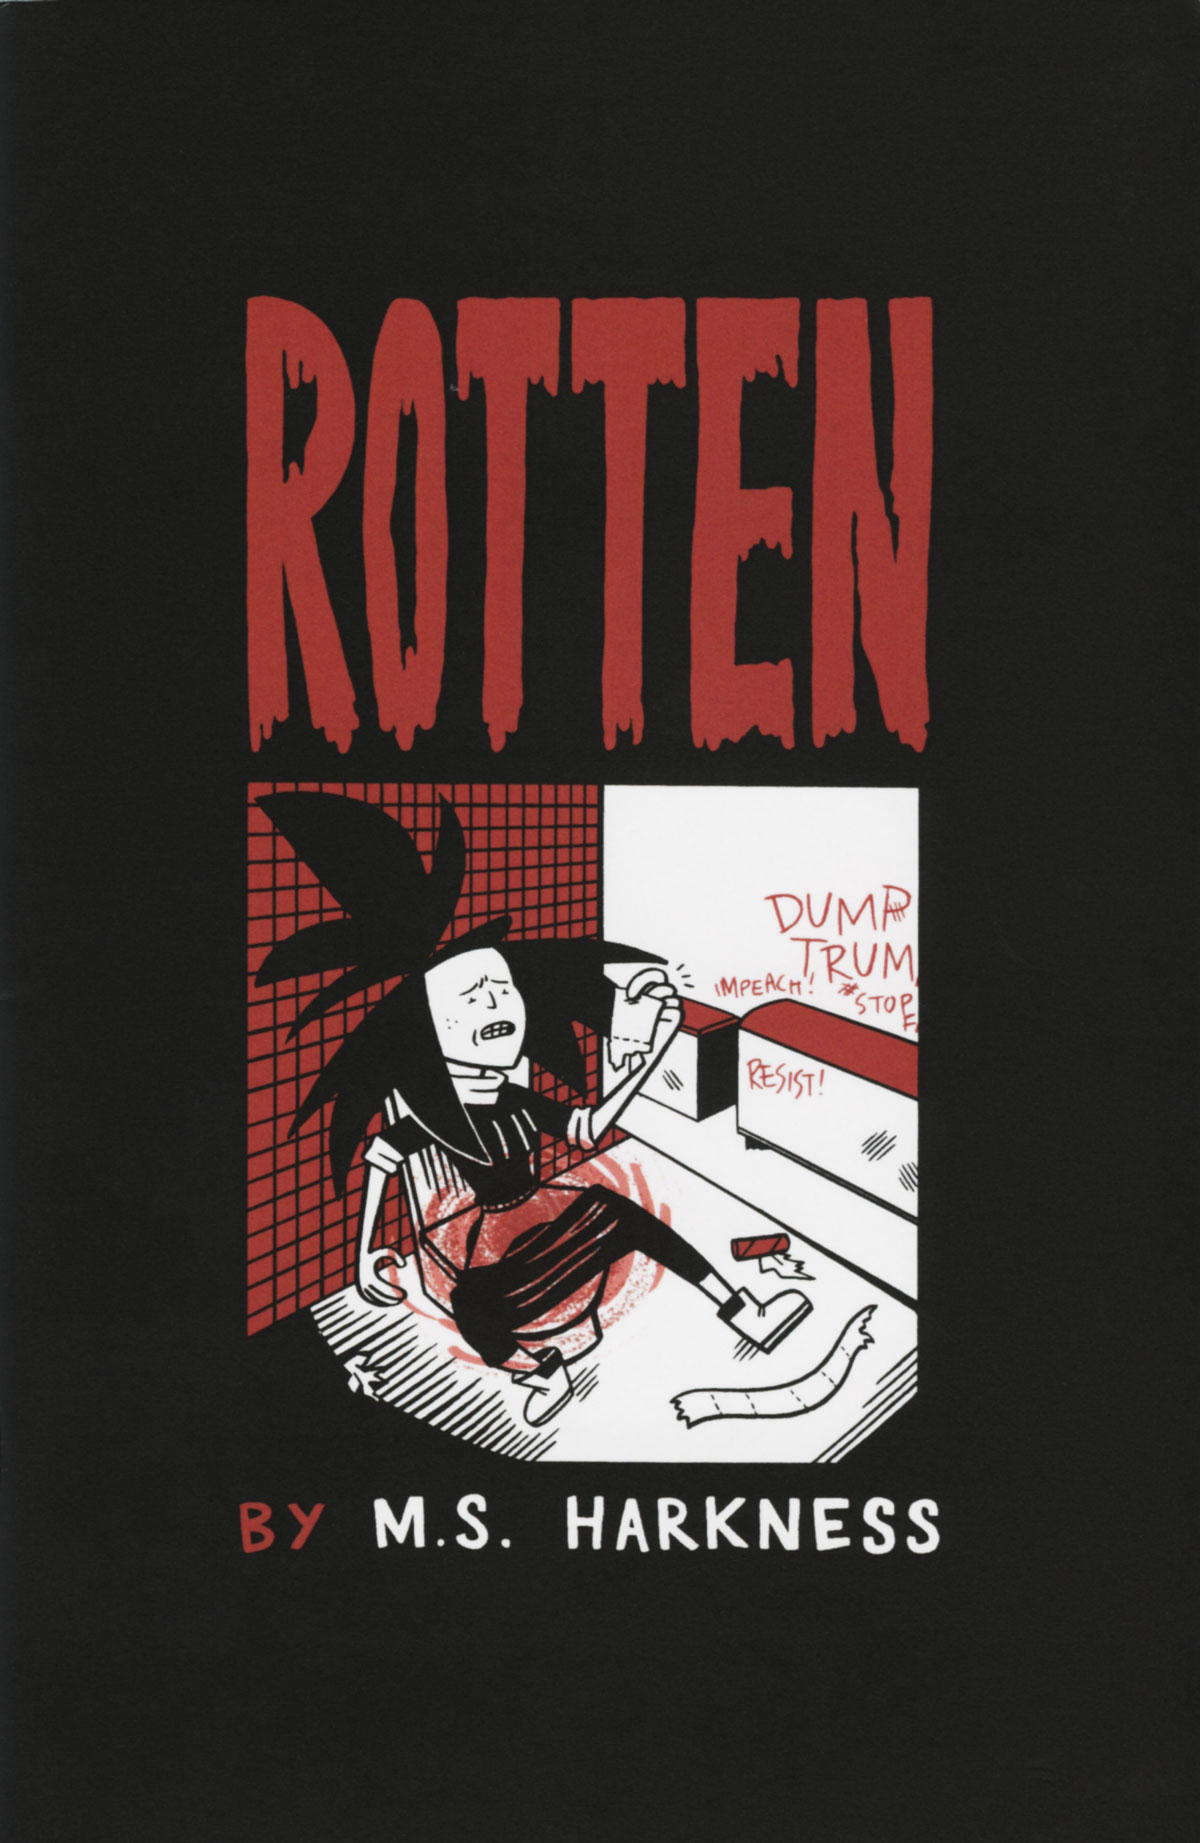 Rotten by M.S. Harkness